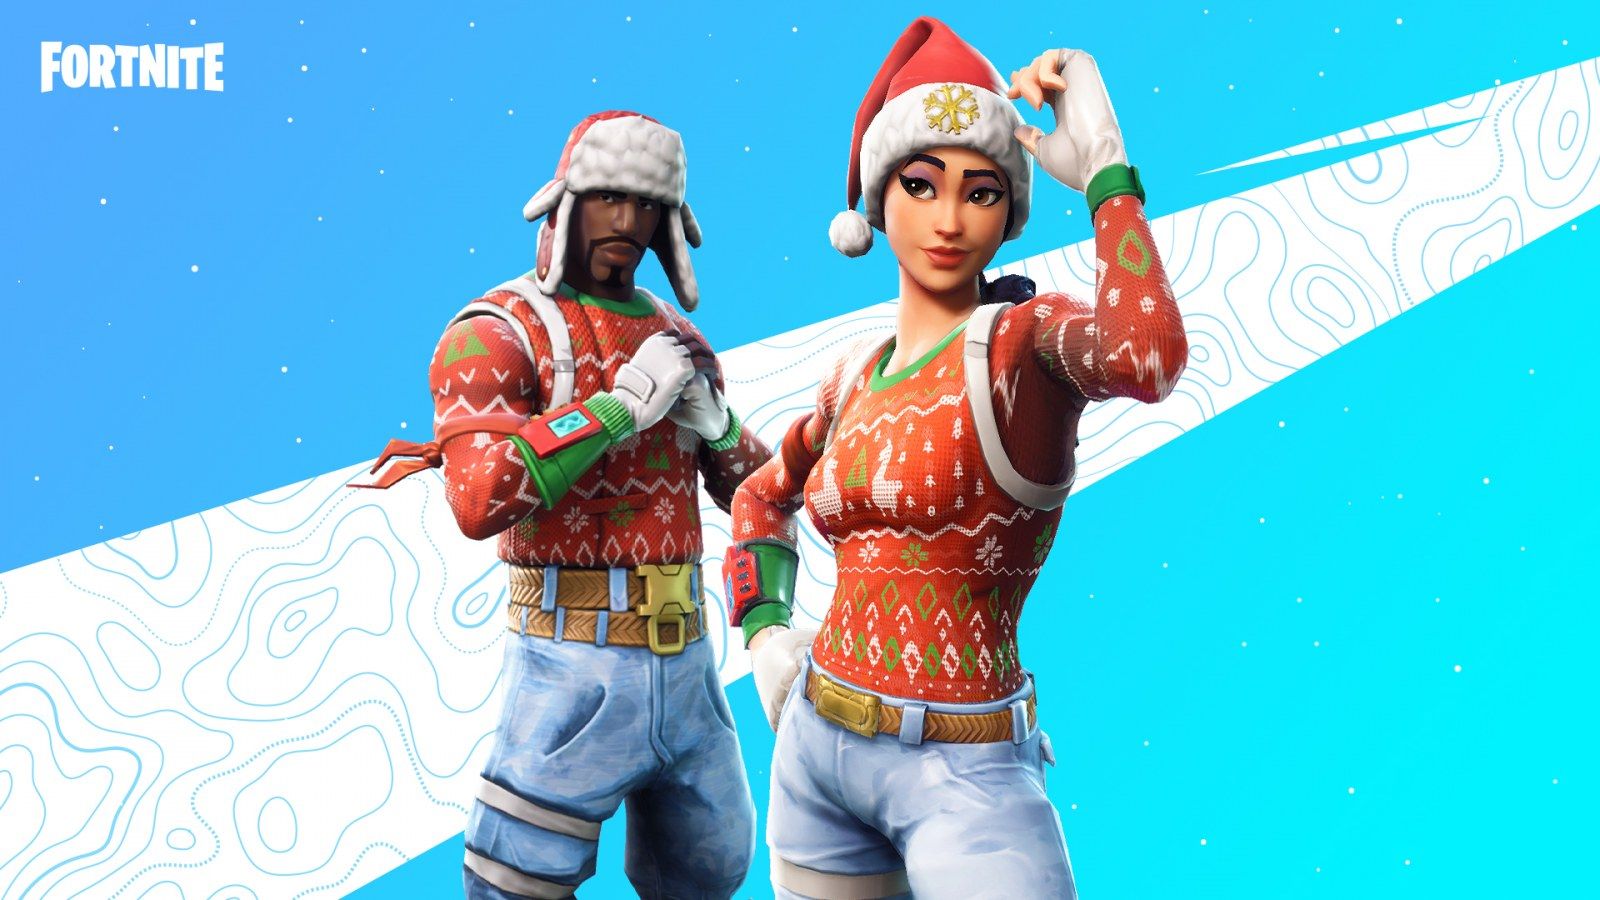 Fortnite Update 15 10 Adds Operation Snowdown And Cowboy Repeater Patch Notes Save the world from epic games. fortnite update 15 10 adds operation